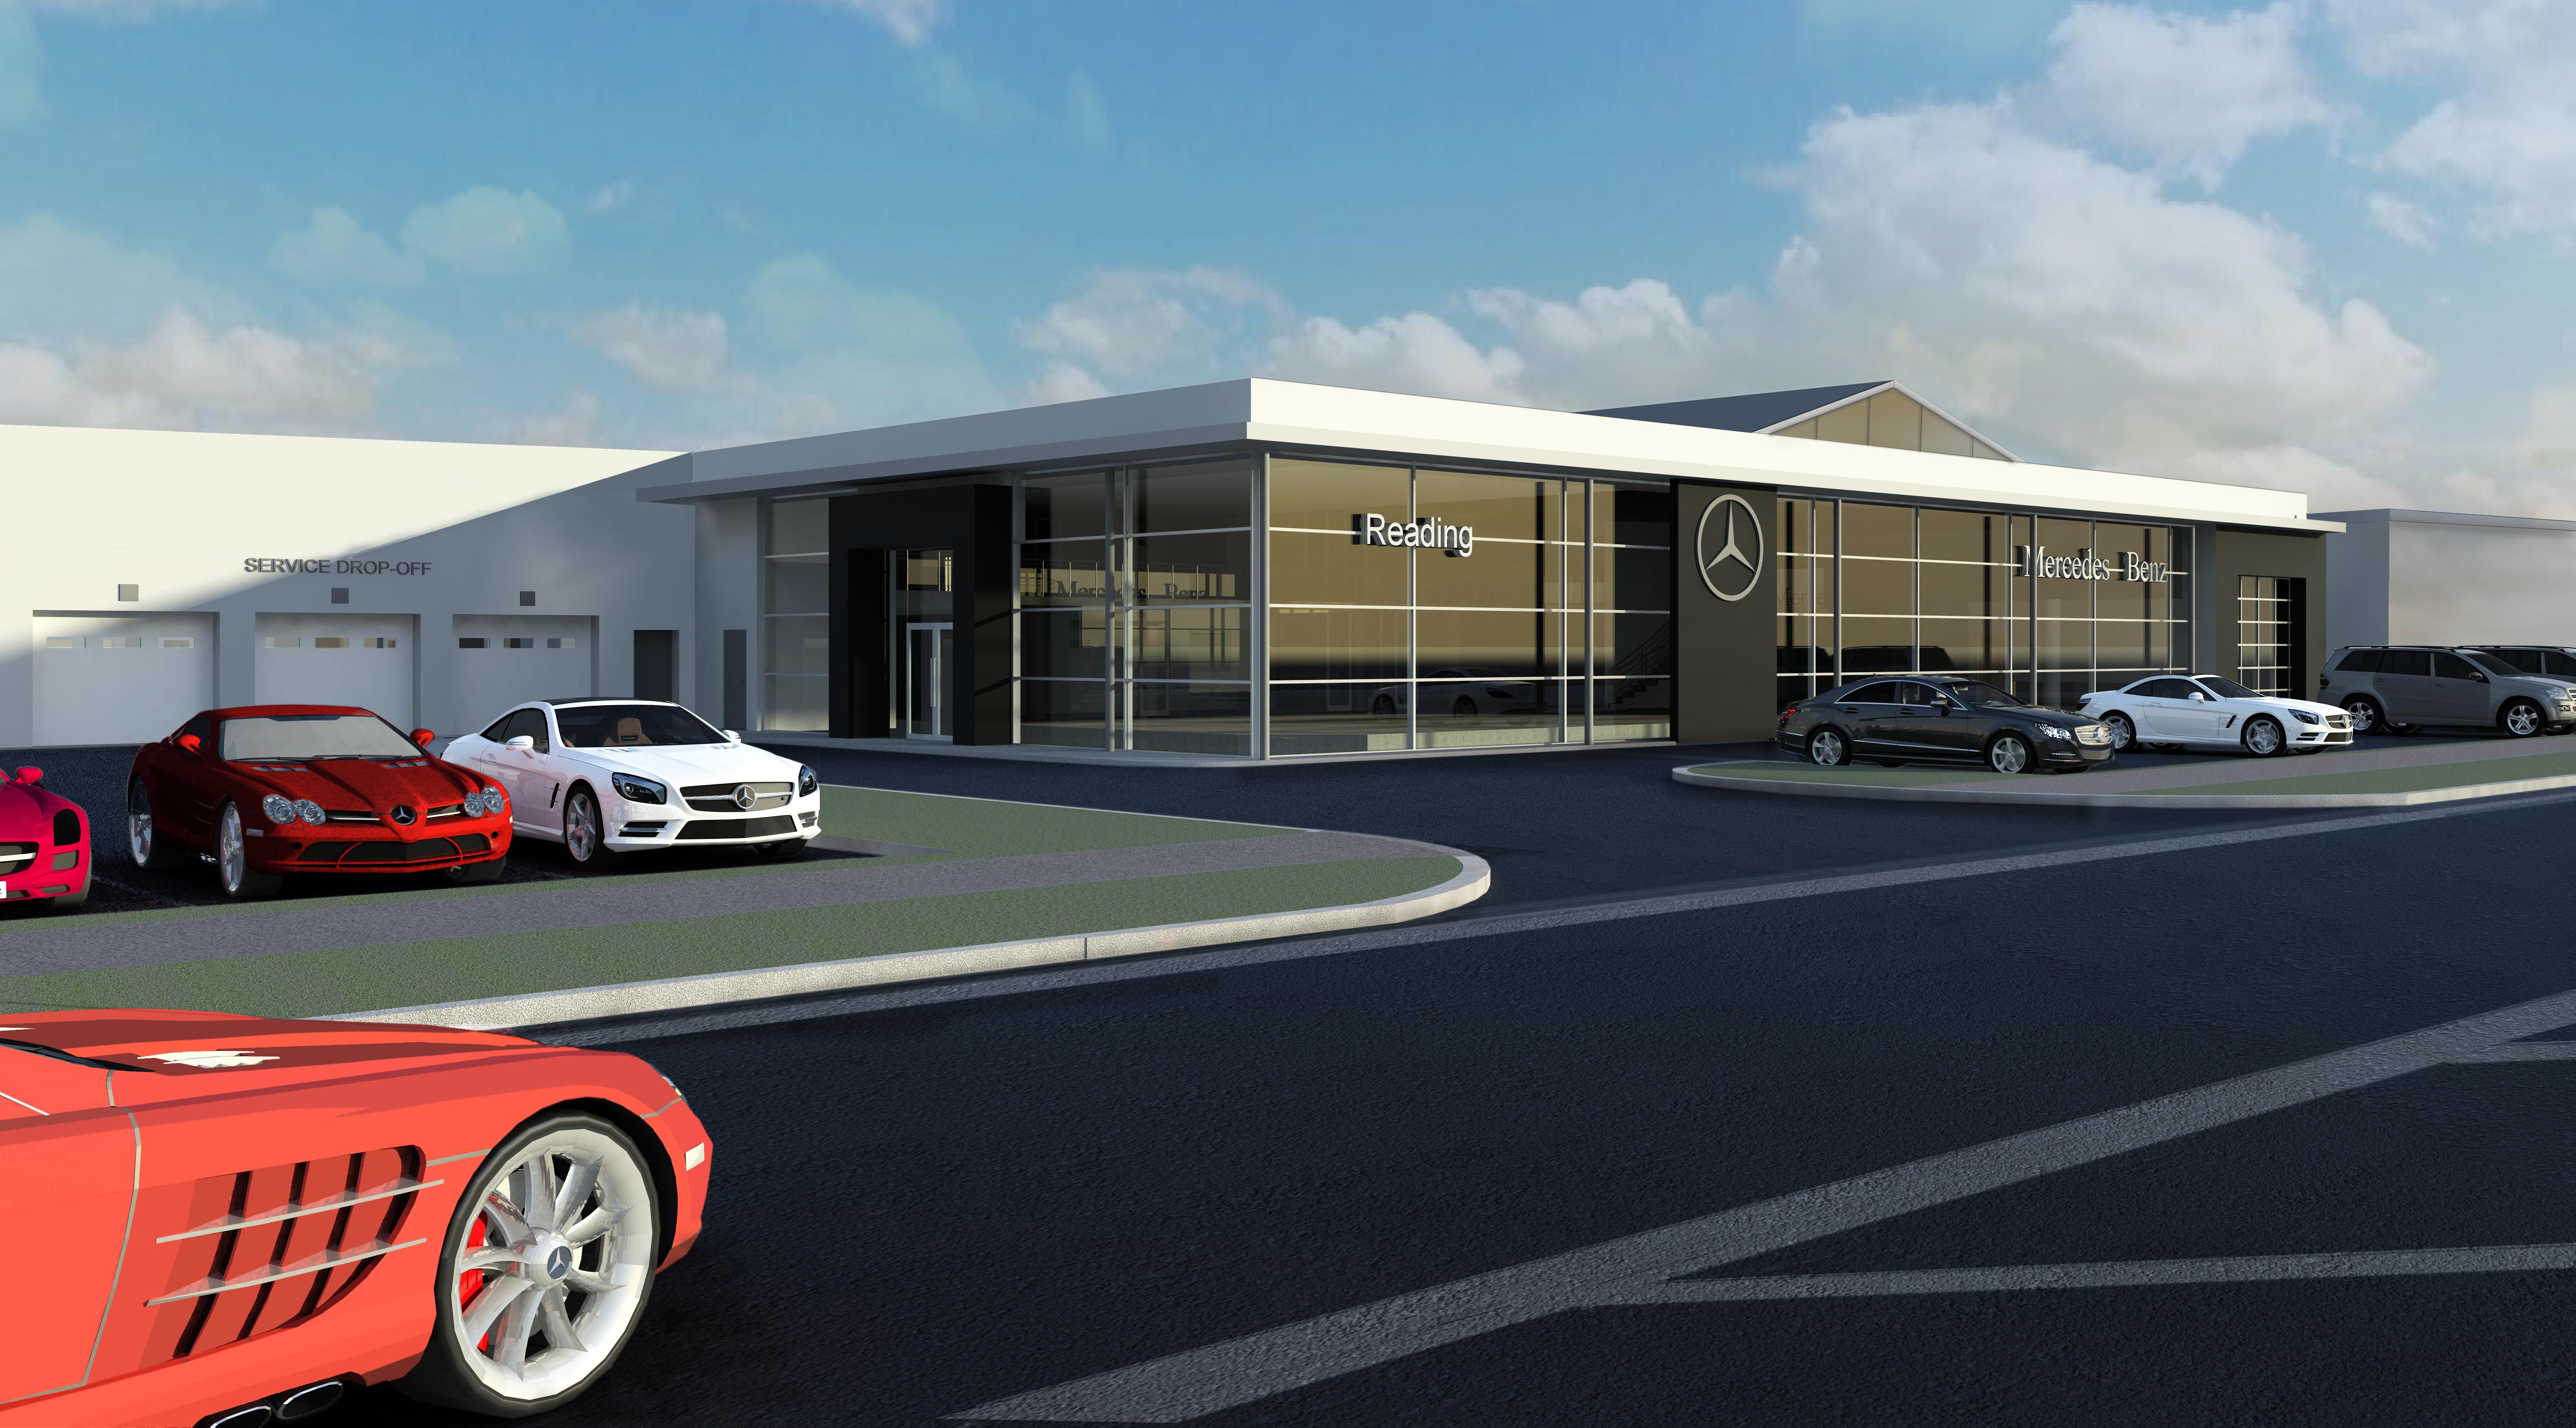 Vertu Motors invests �4.7 million in Mercedes-Benz Reading